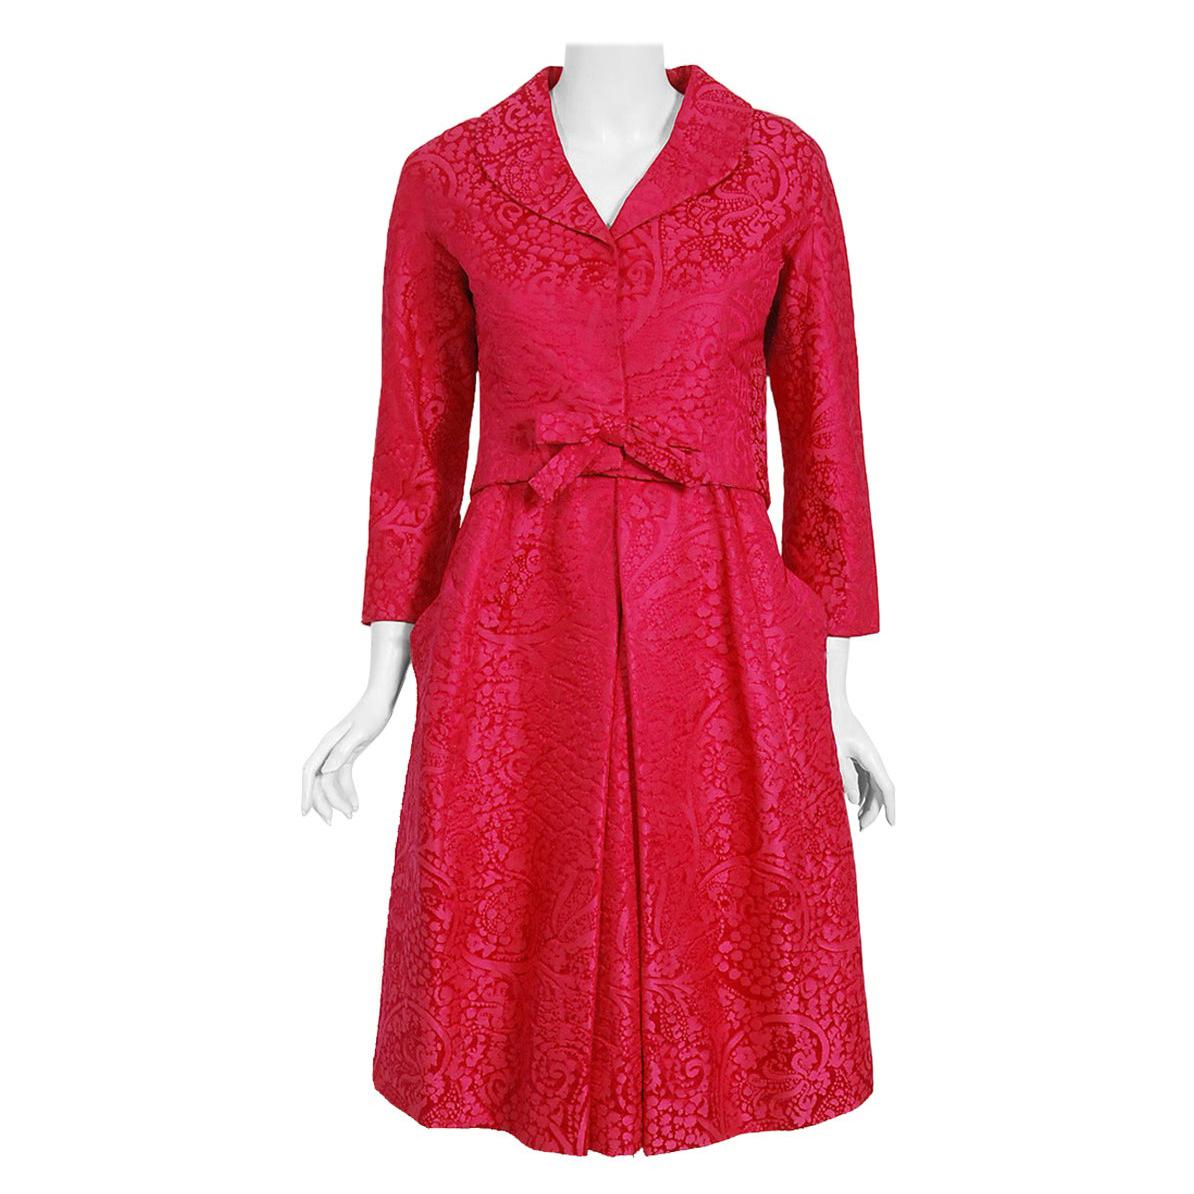 Vintage 1962 Christian Dior Haute Couture Pink Textured Silk Dress & Bow Jacket